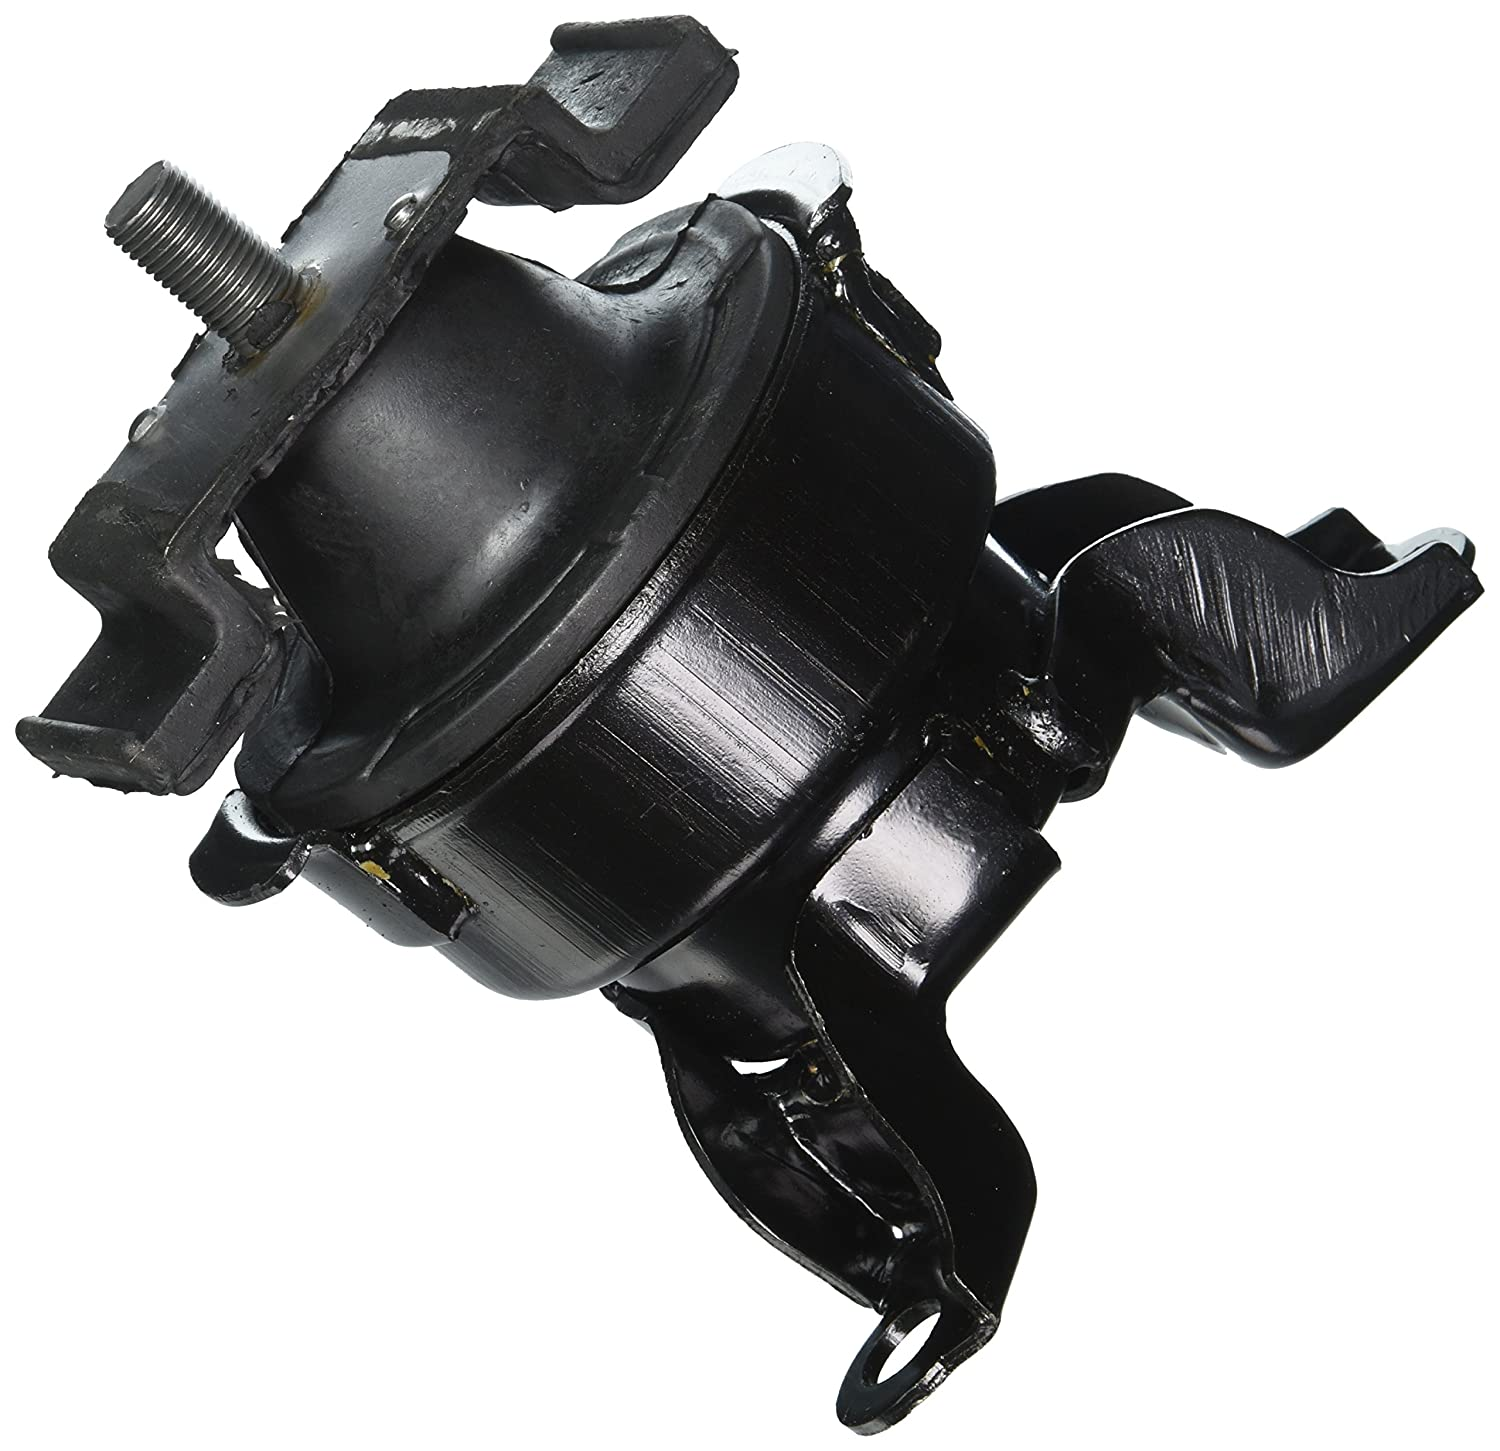 Eagle BHP 6556 Engine Motor Mount (Honda Civic Honda CRV 1.6L 2.0L Rear Upper Left)